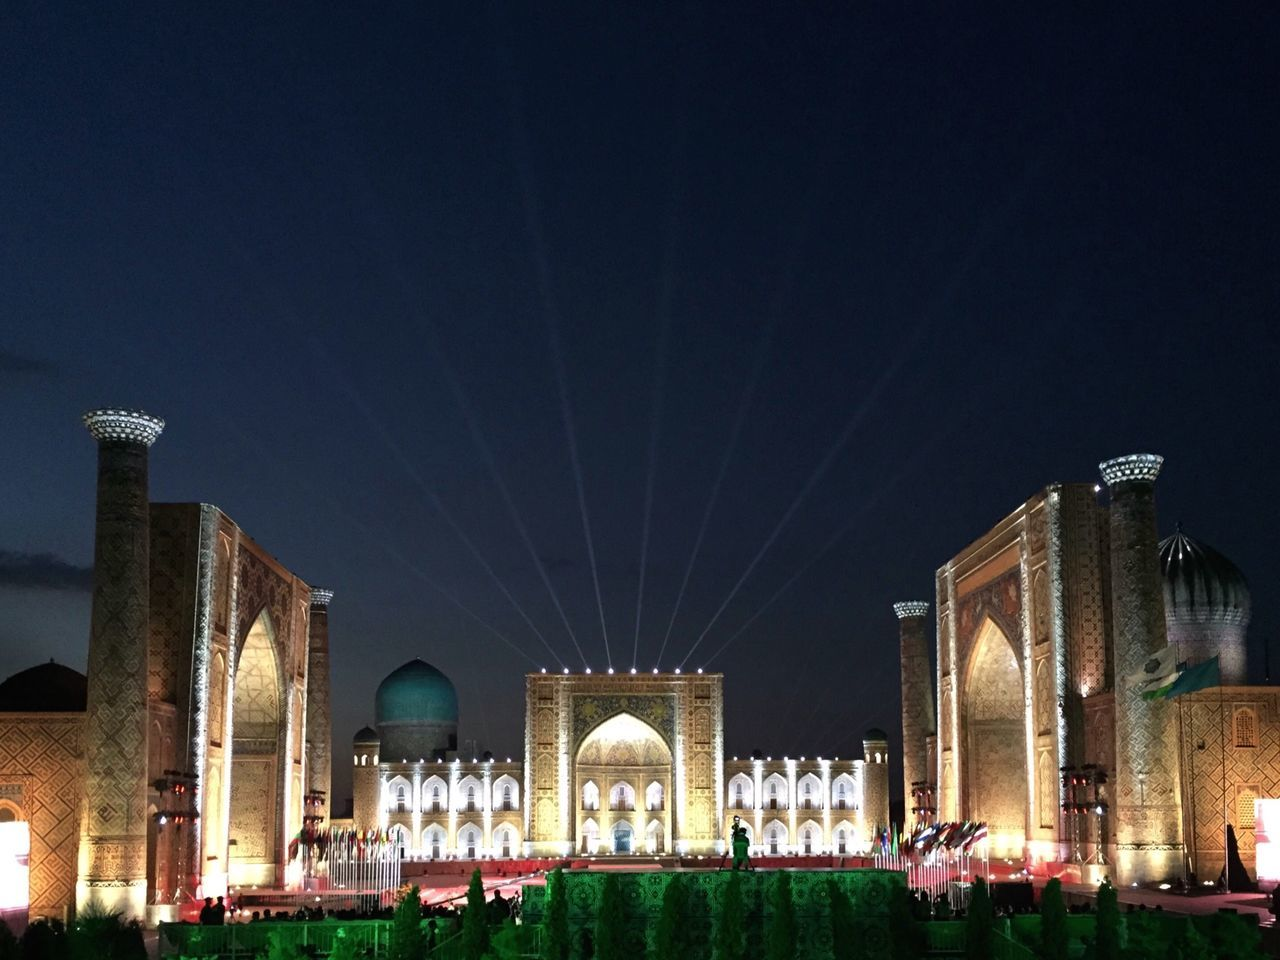 Night Samarkand Music History Silk Road Night Lights Architecture Cities At Night Central Asia